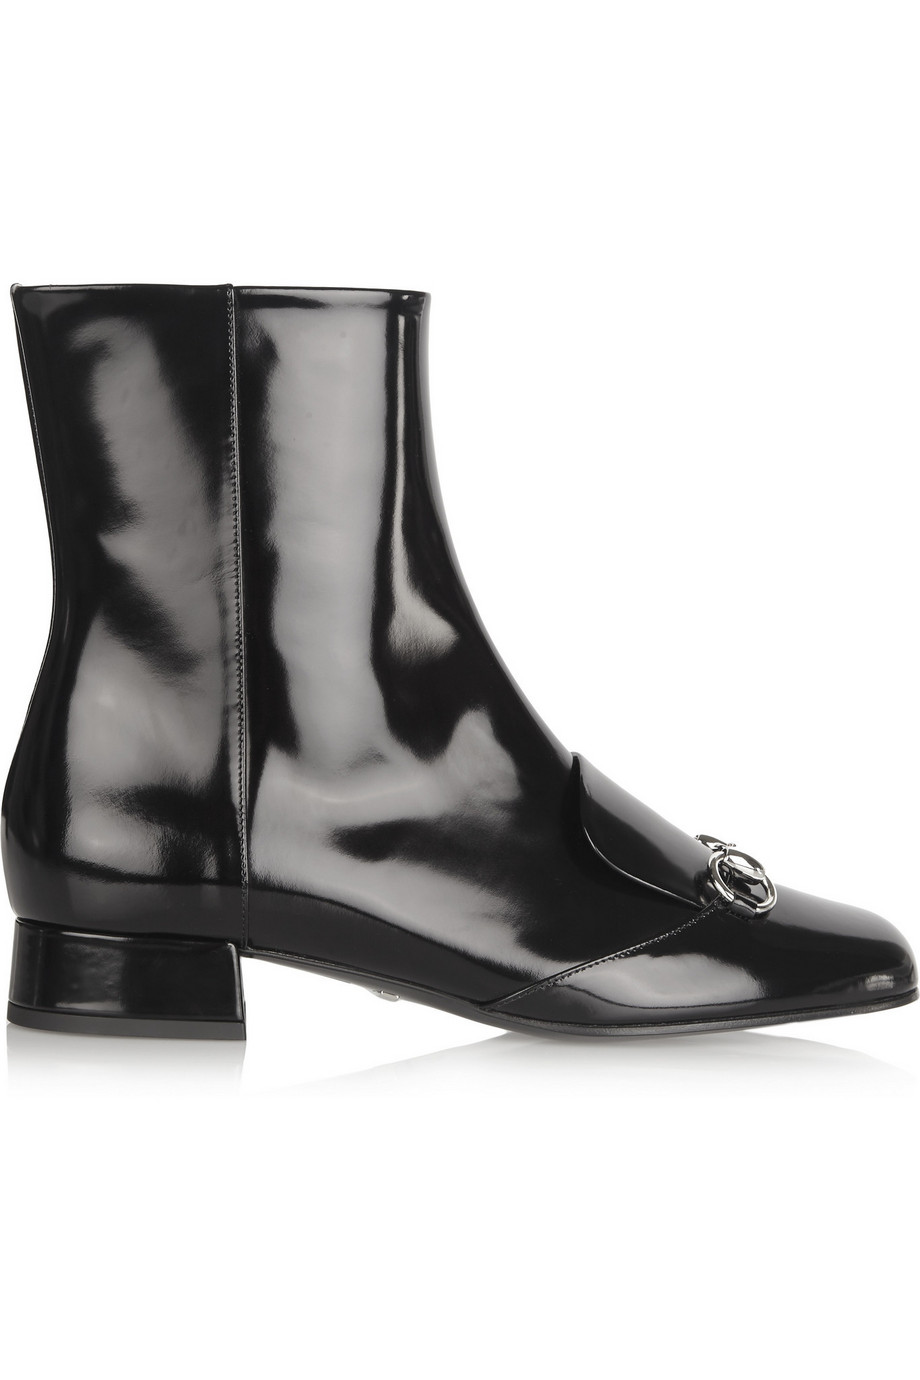 Gucci Horsebit-Detailed Patent-Leather Ankle Boots, Black, Women's US Size: 7.5, Size: 38